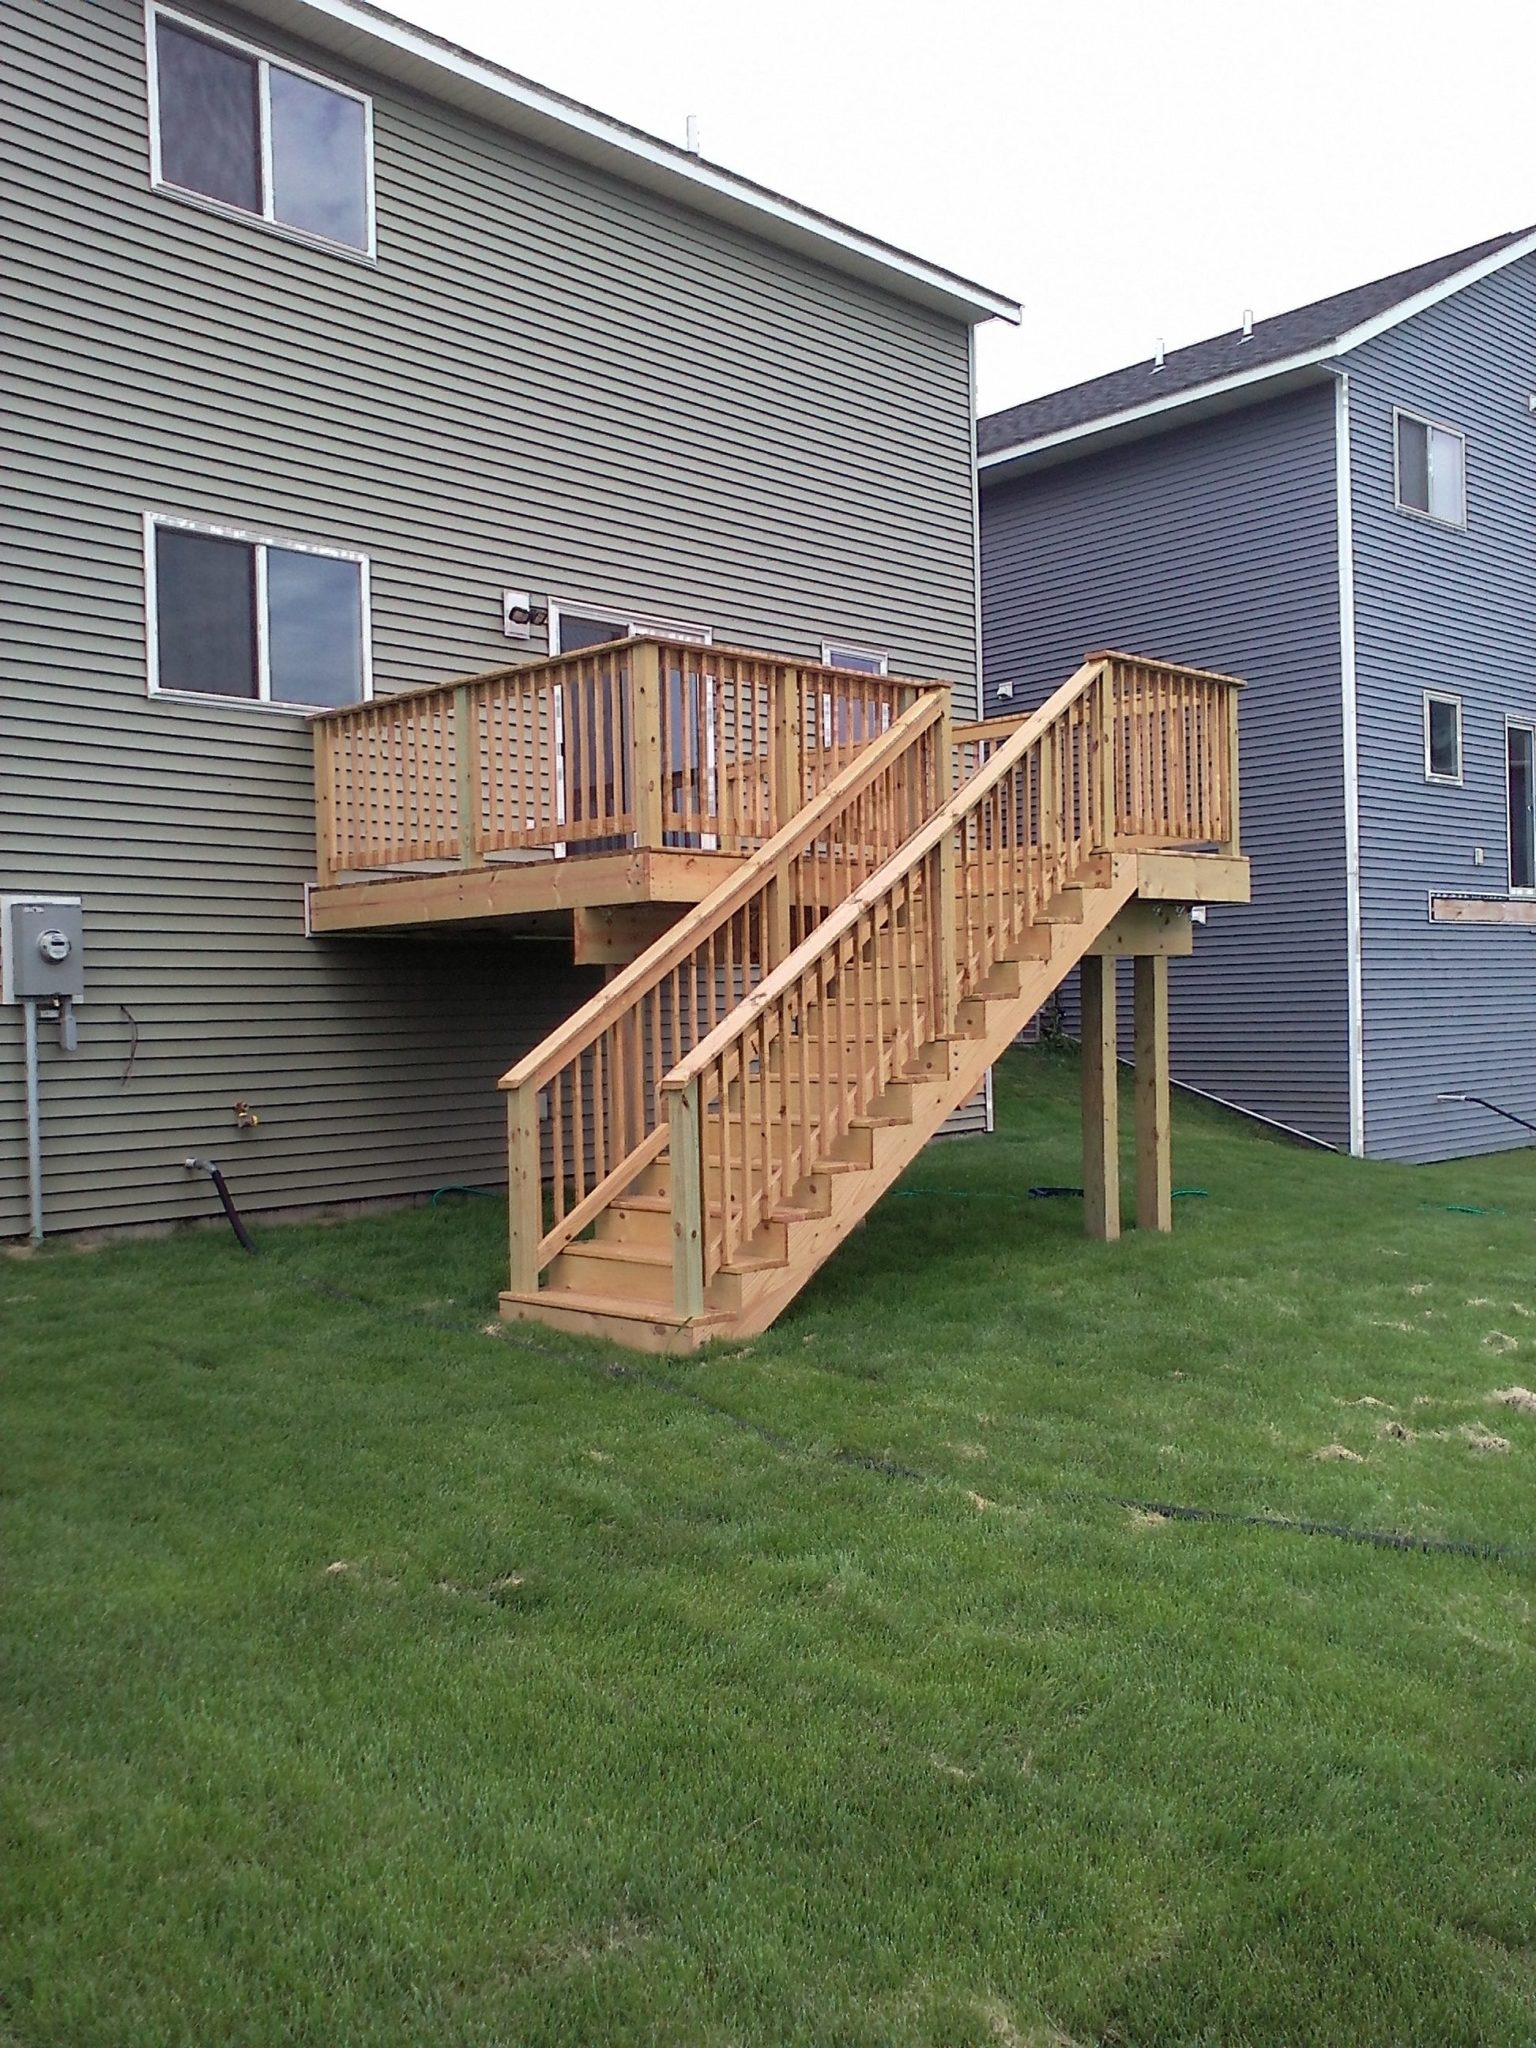 mankato-deck-and-railing-113144